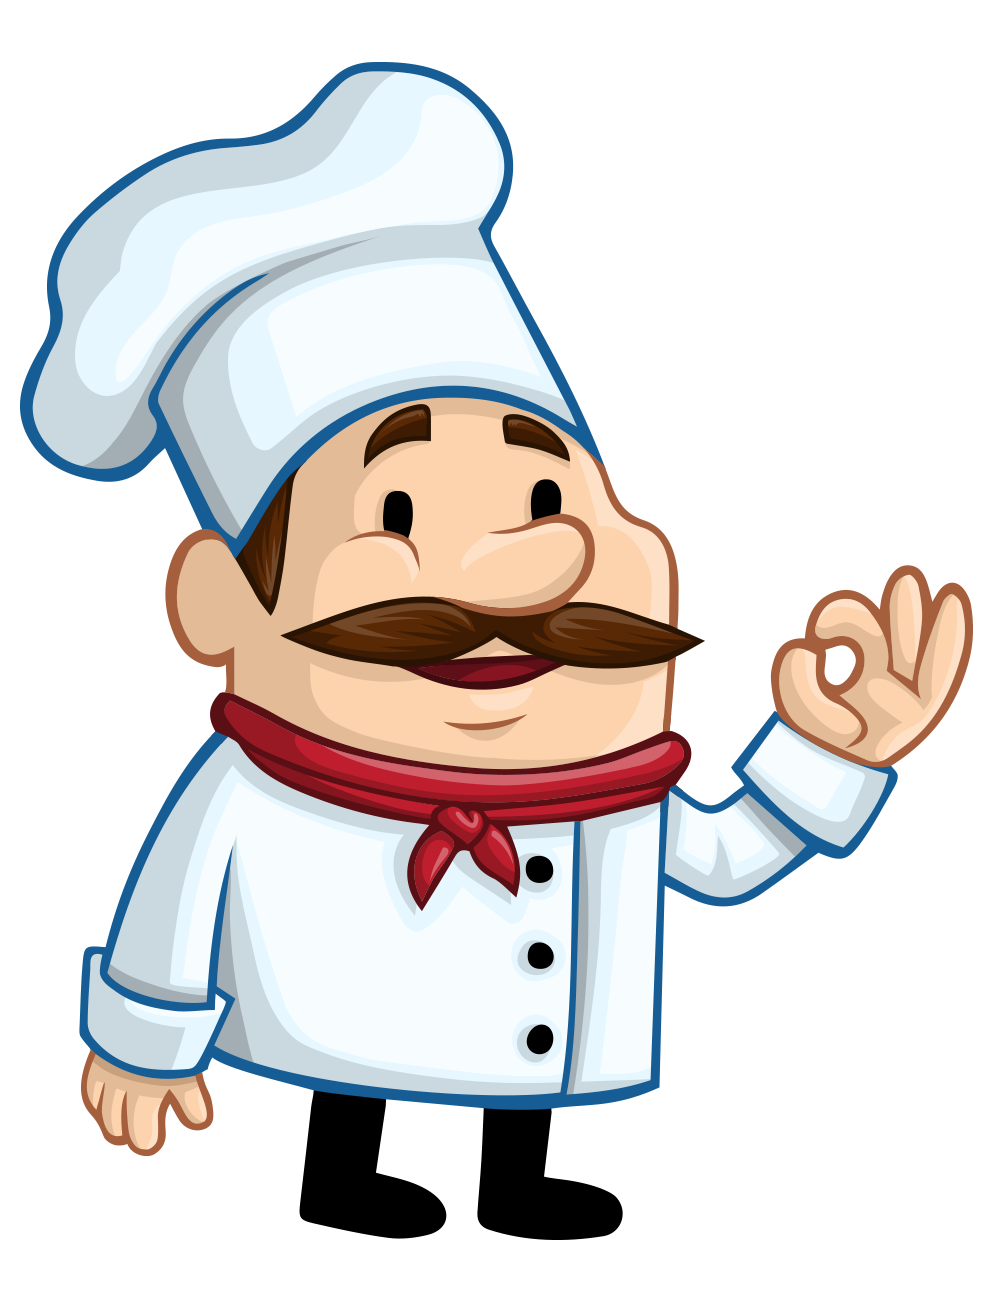 jpg stock Chefs clipart hand. Chef cartoon restaurant illustration